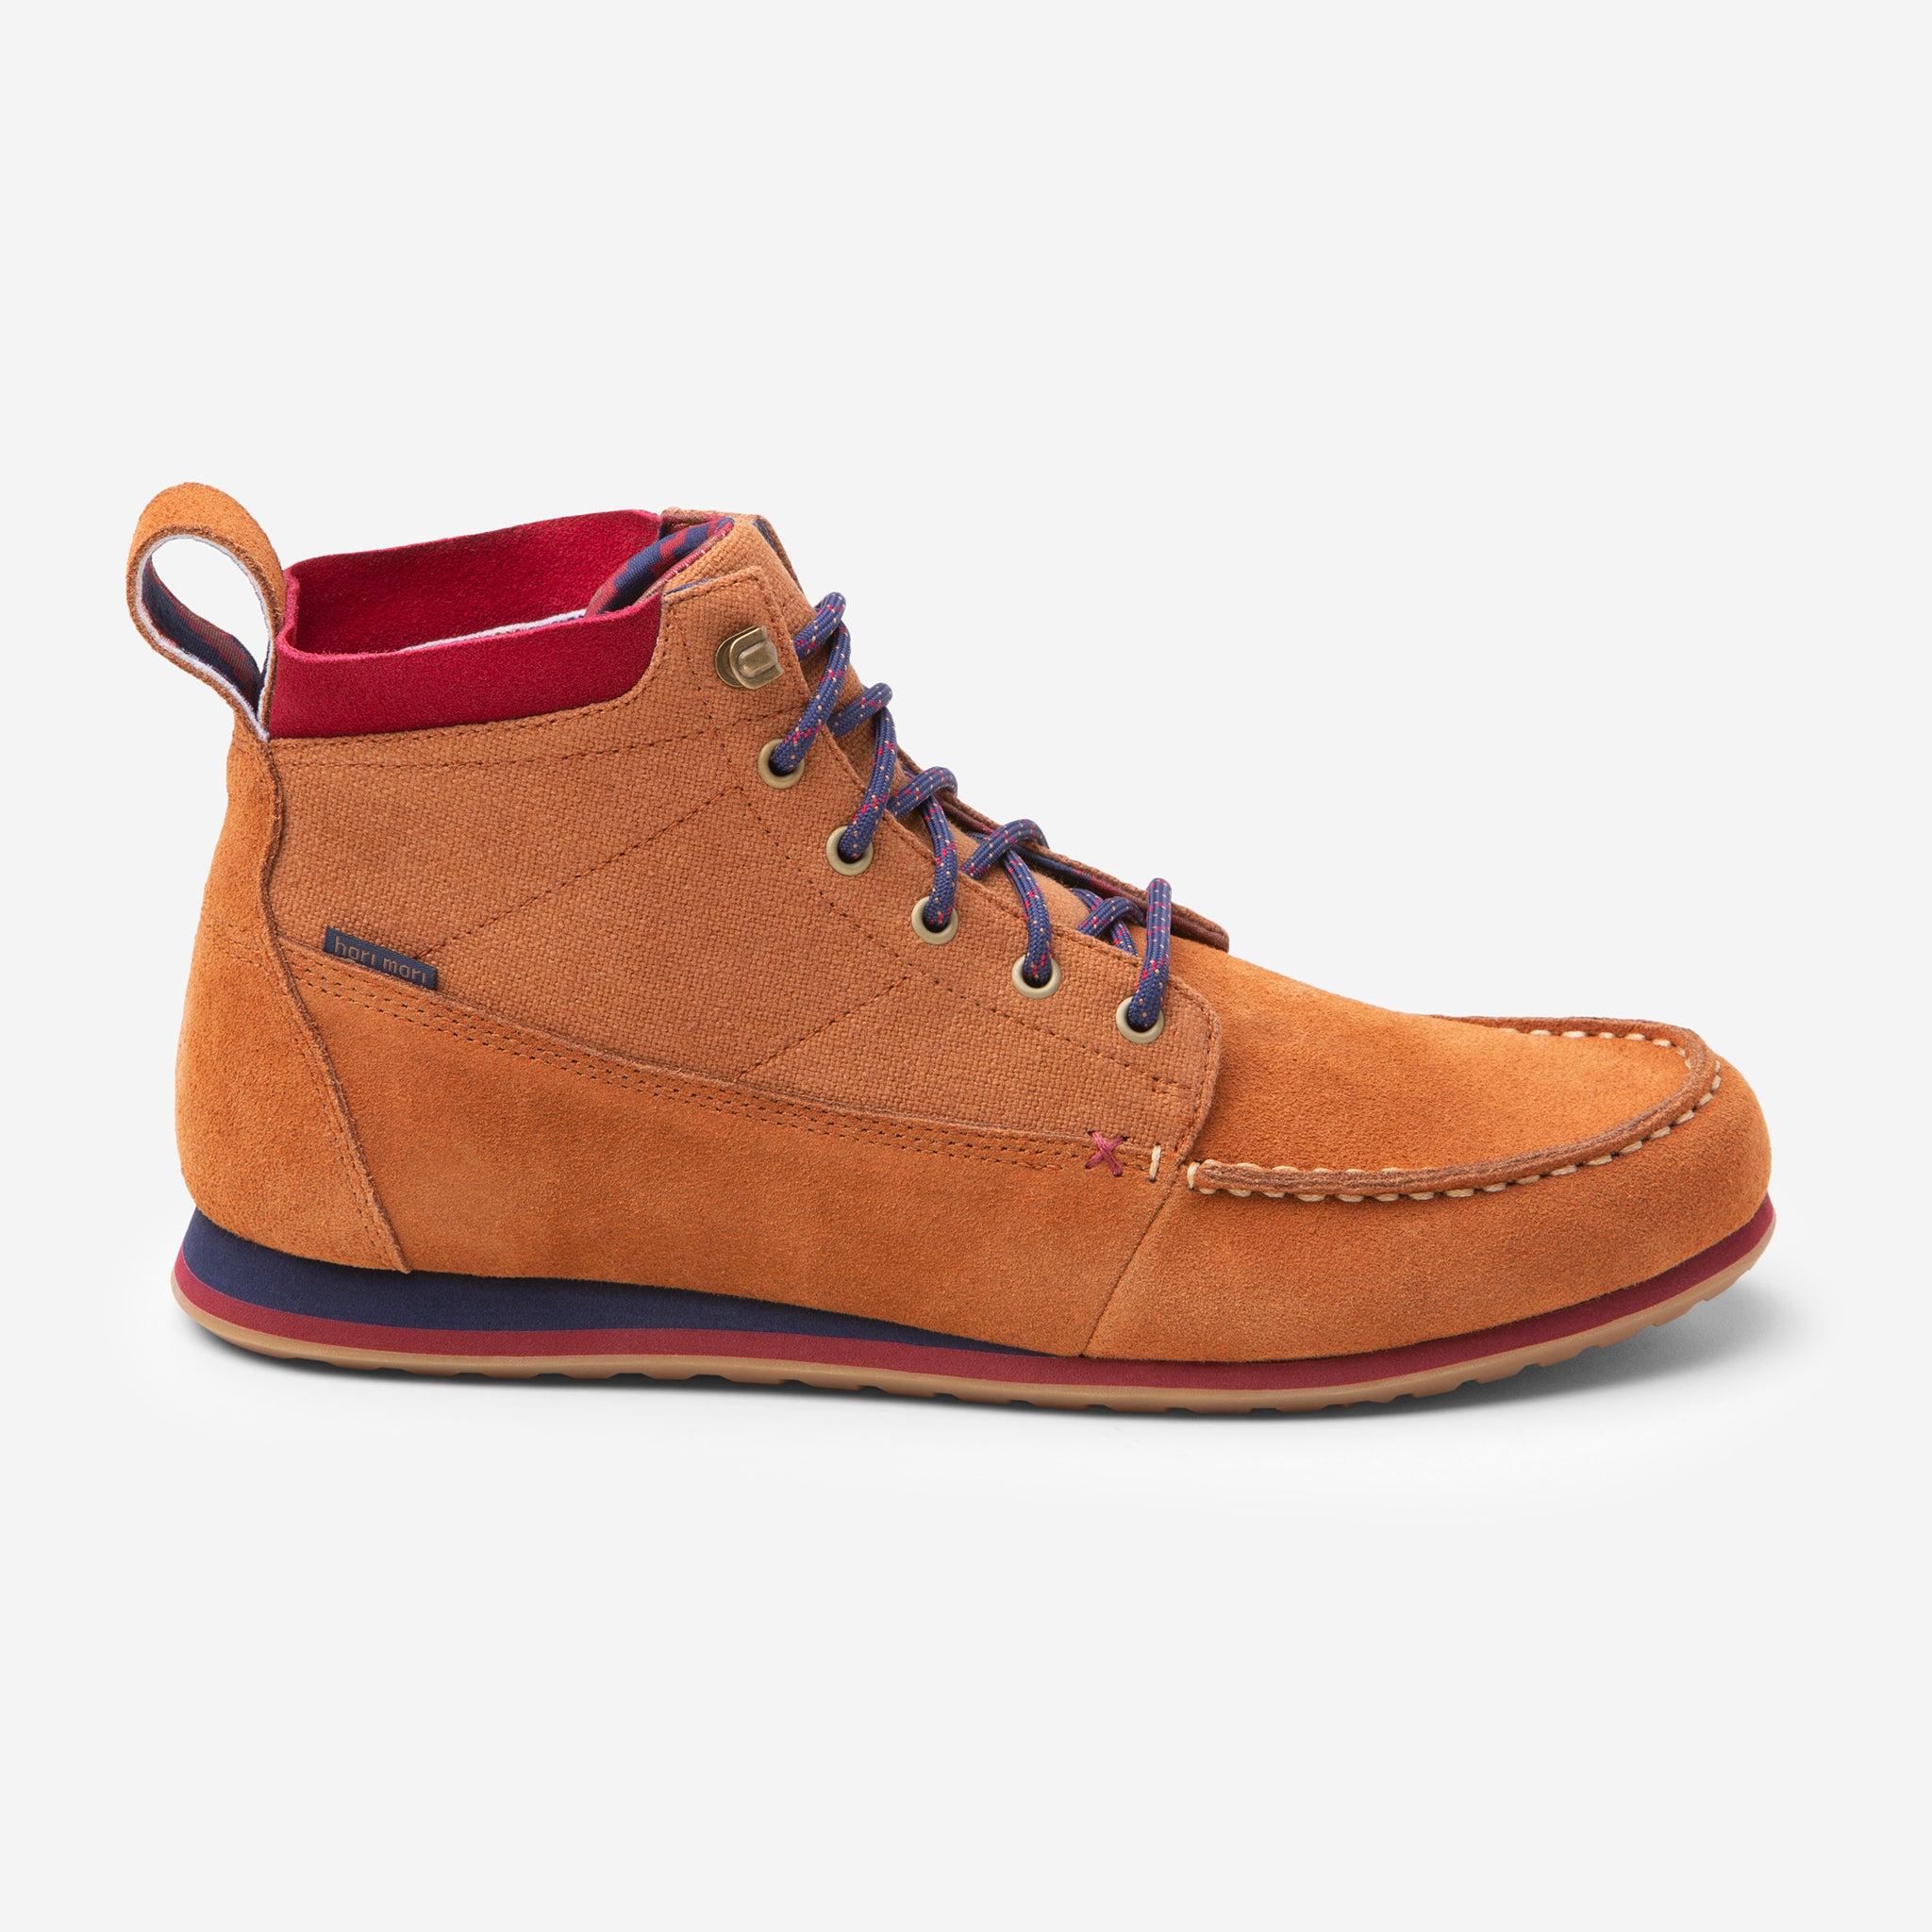 CanyonTreck Chukka - Men's - Tobacco - Side View